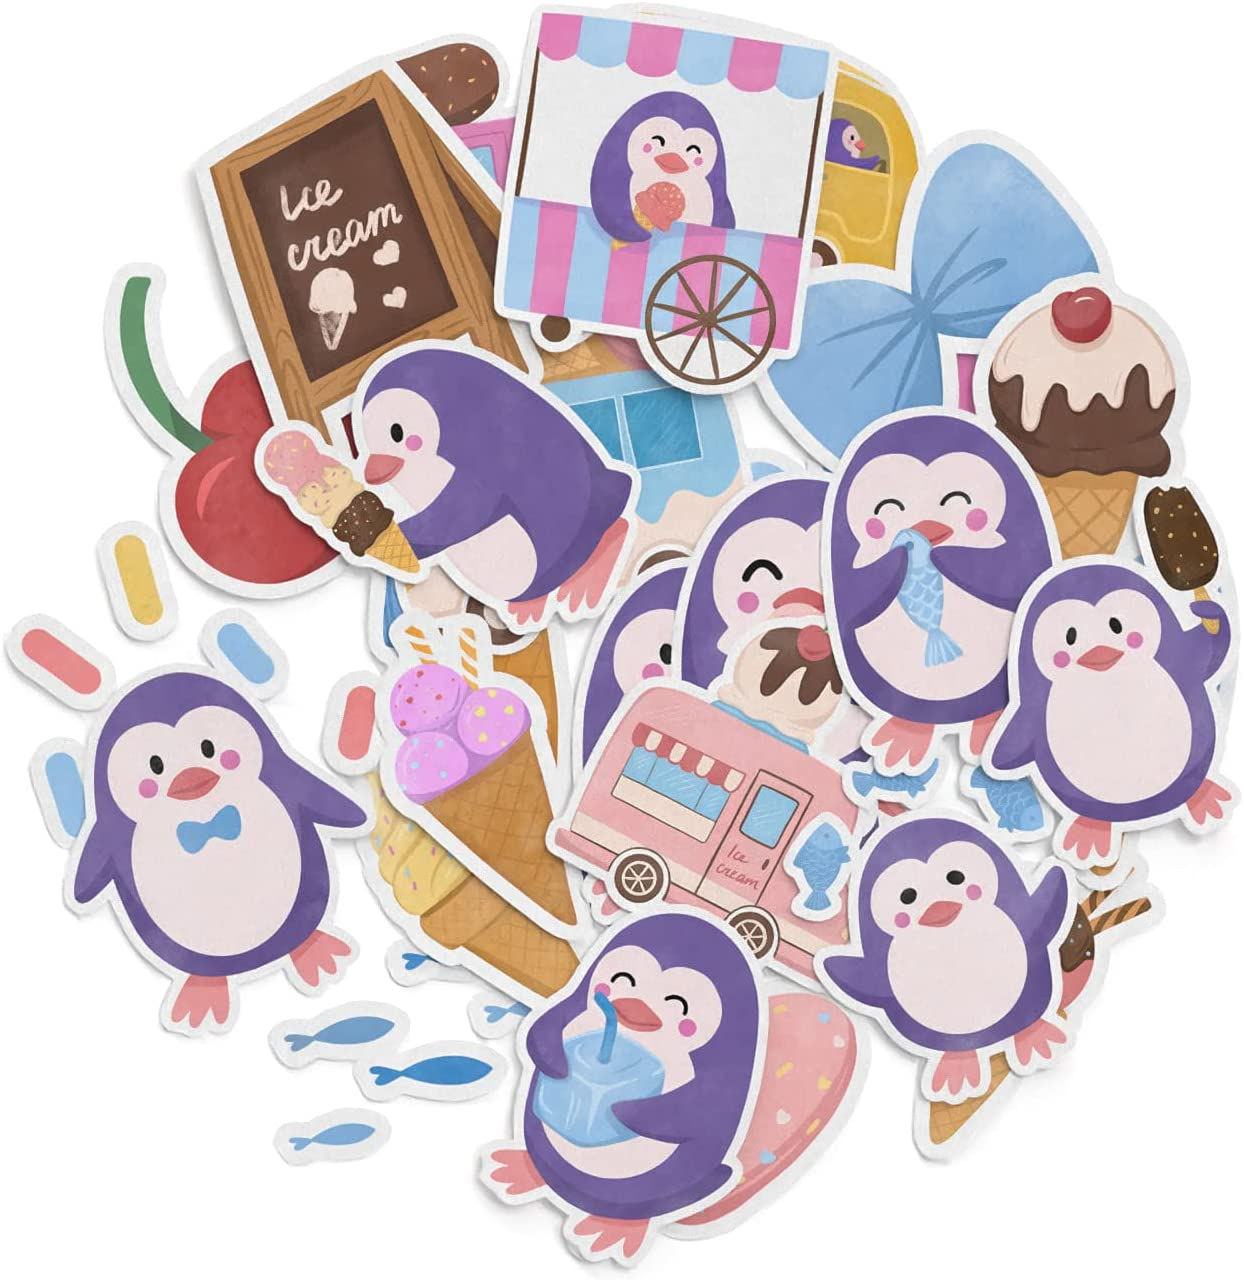 Mertak - 30 PCS - Sticker Pack for Laptop Decals Vinyl Kawaii Ice-Cream Truck Waterproof Stationery Cartoon Penguin for Notebook Cute for Car for Planner Set for Water Bottle for Kids Food